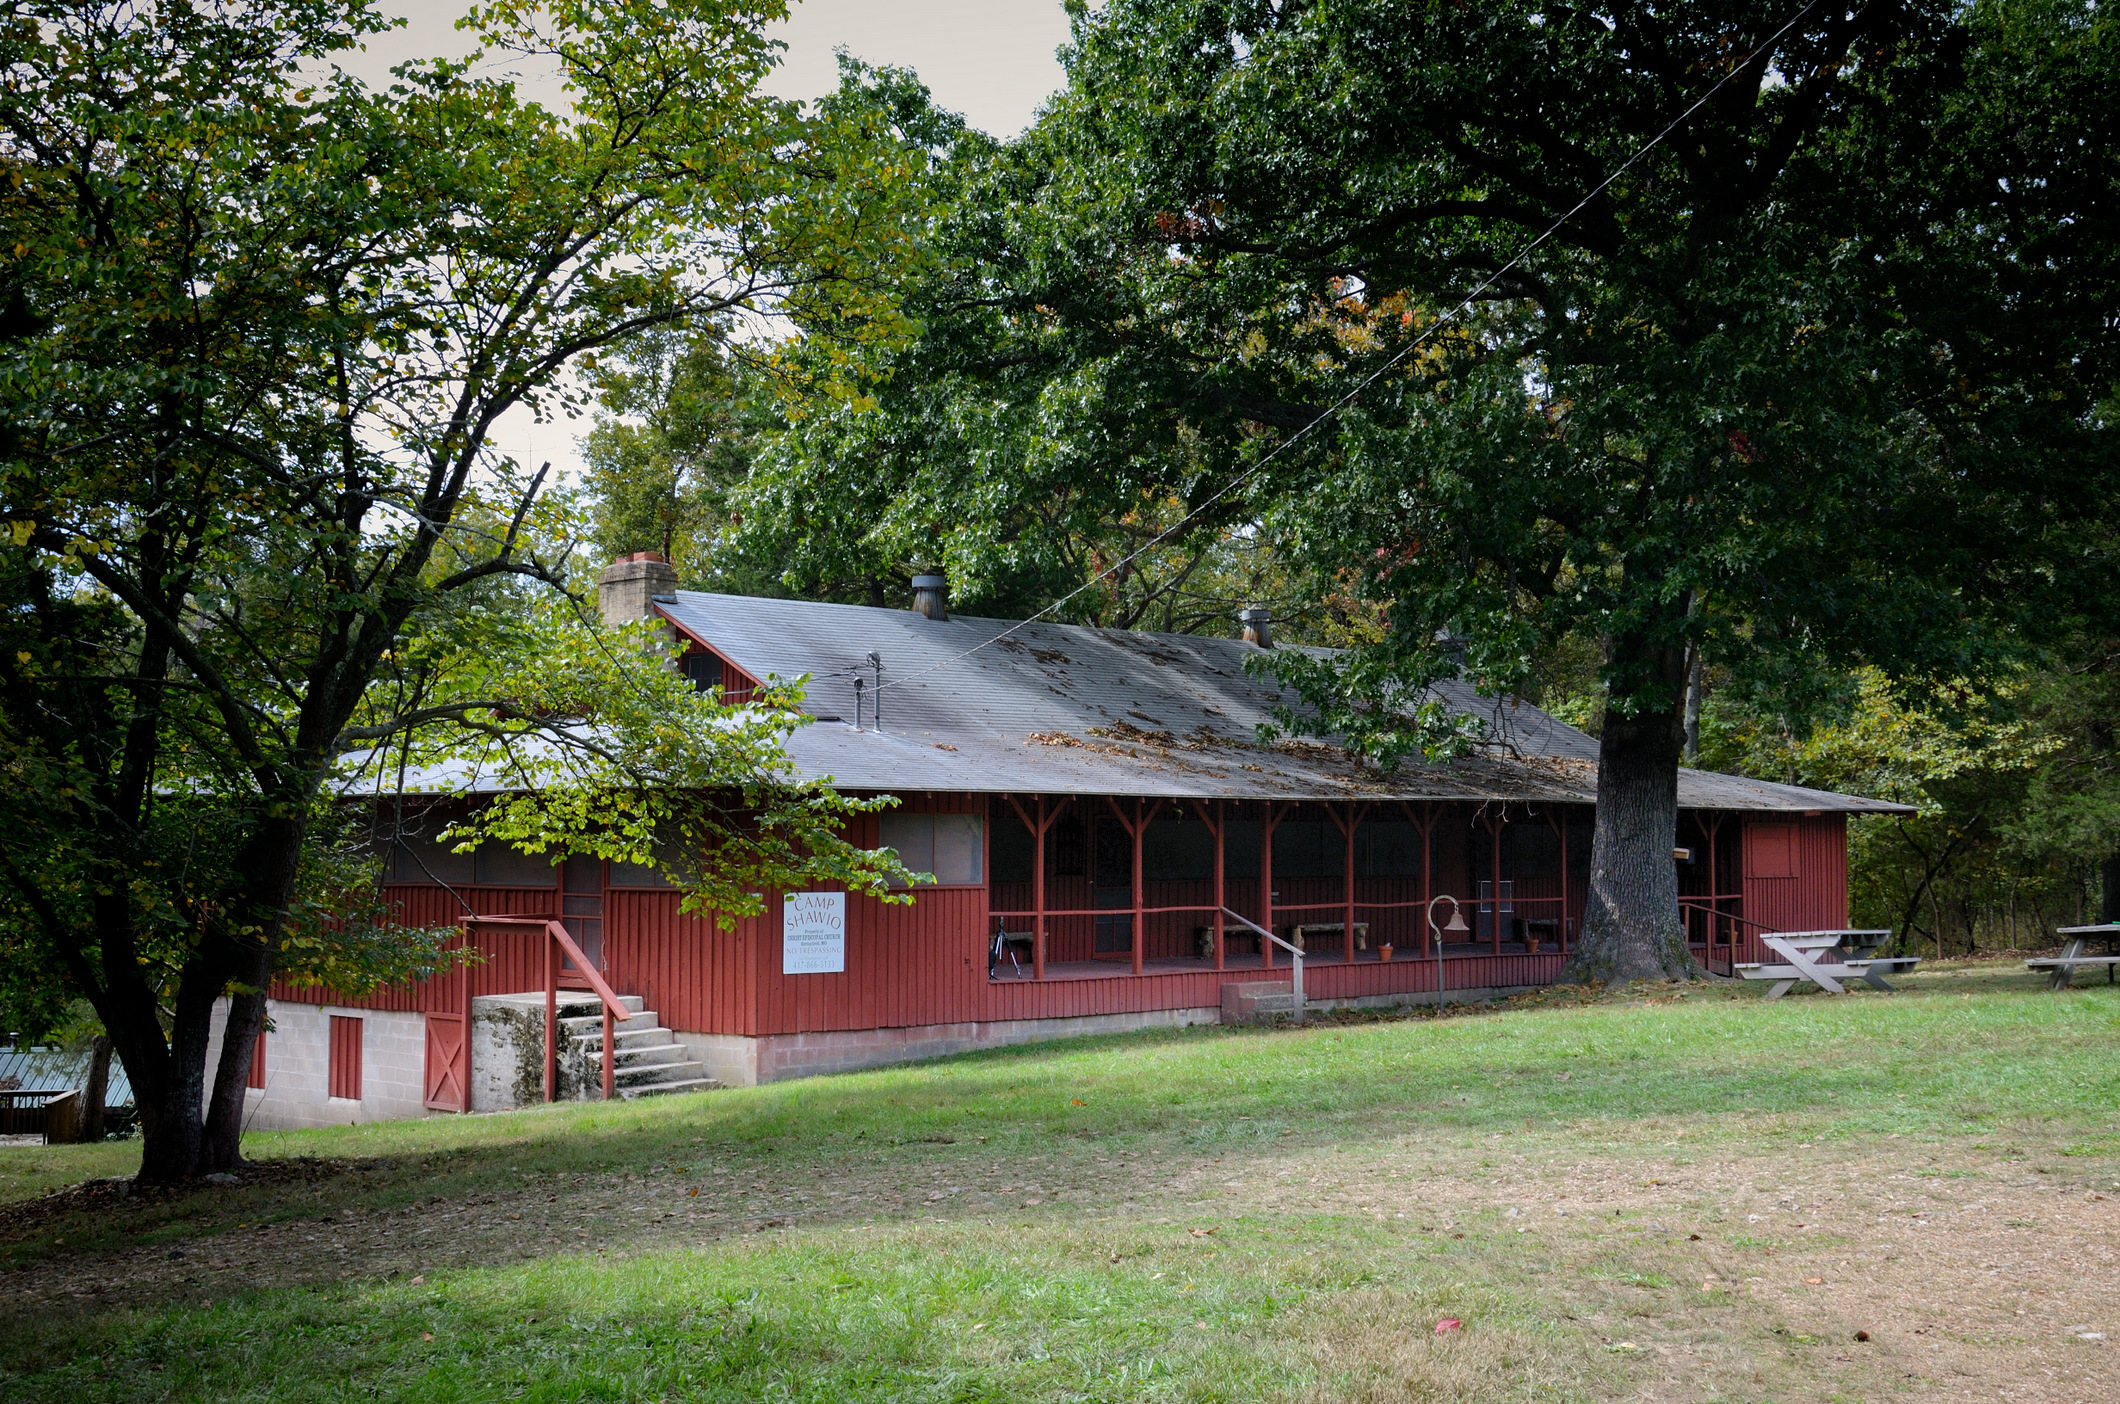 The main building at Camp Shawio